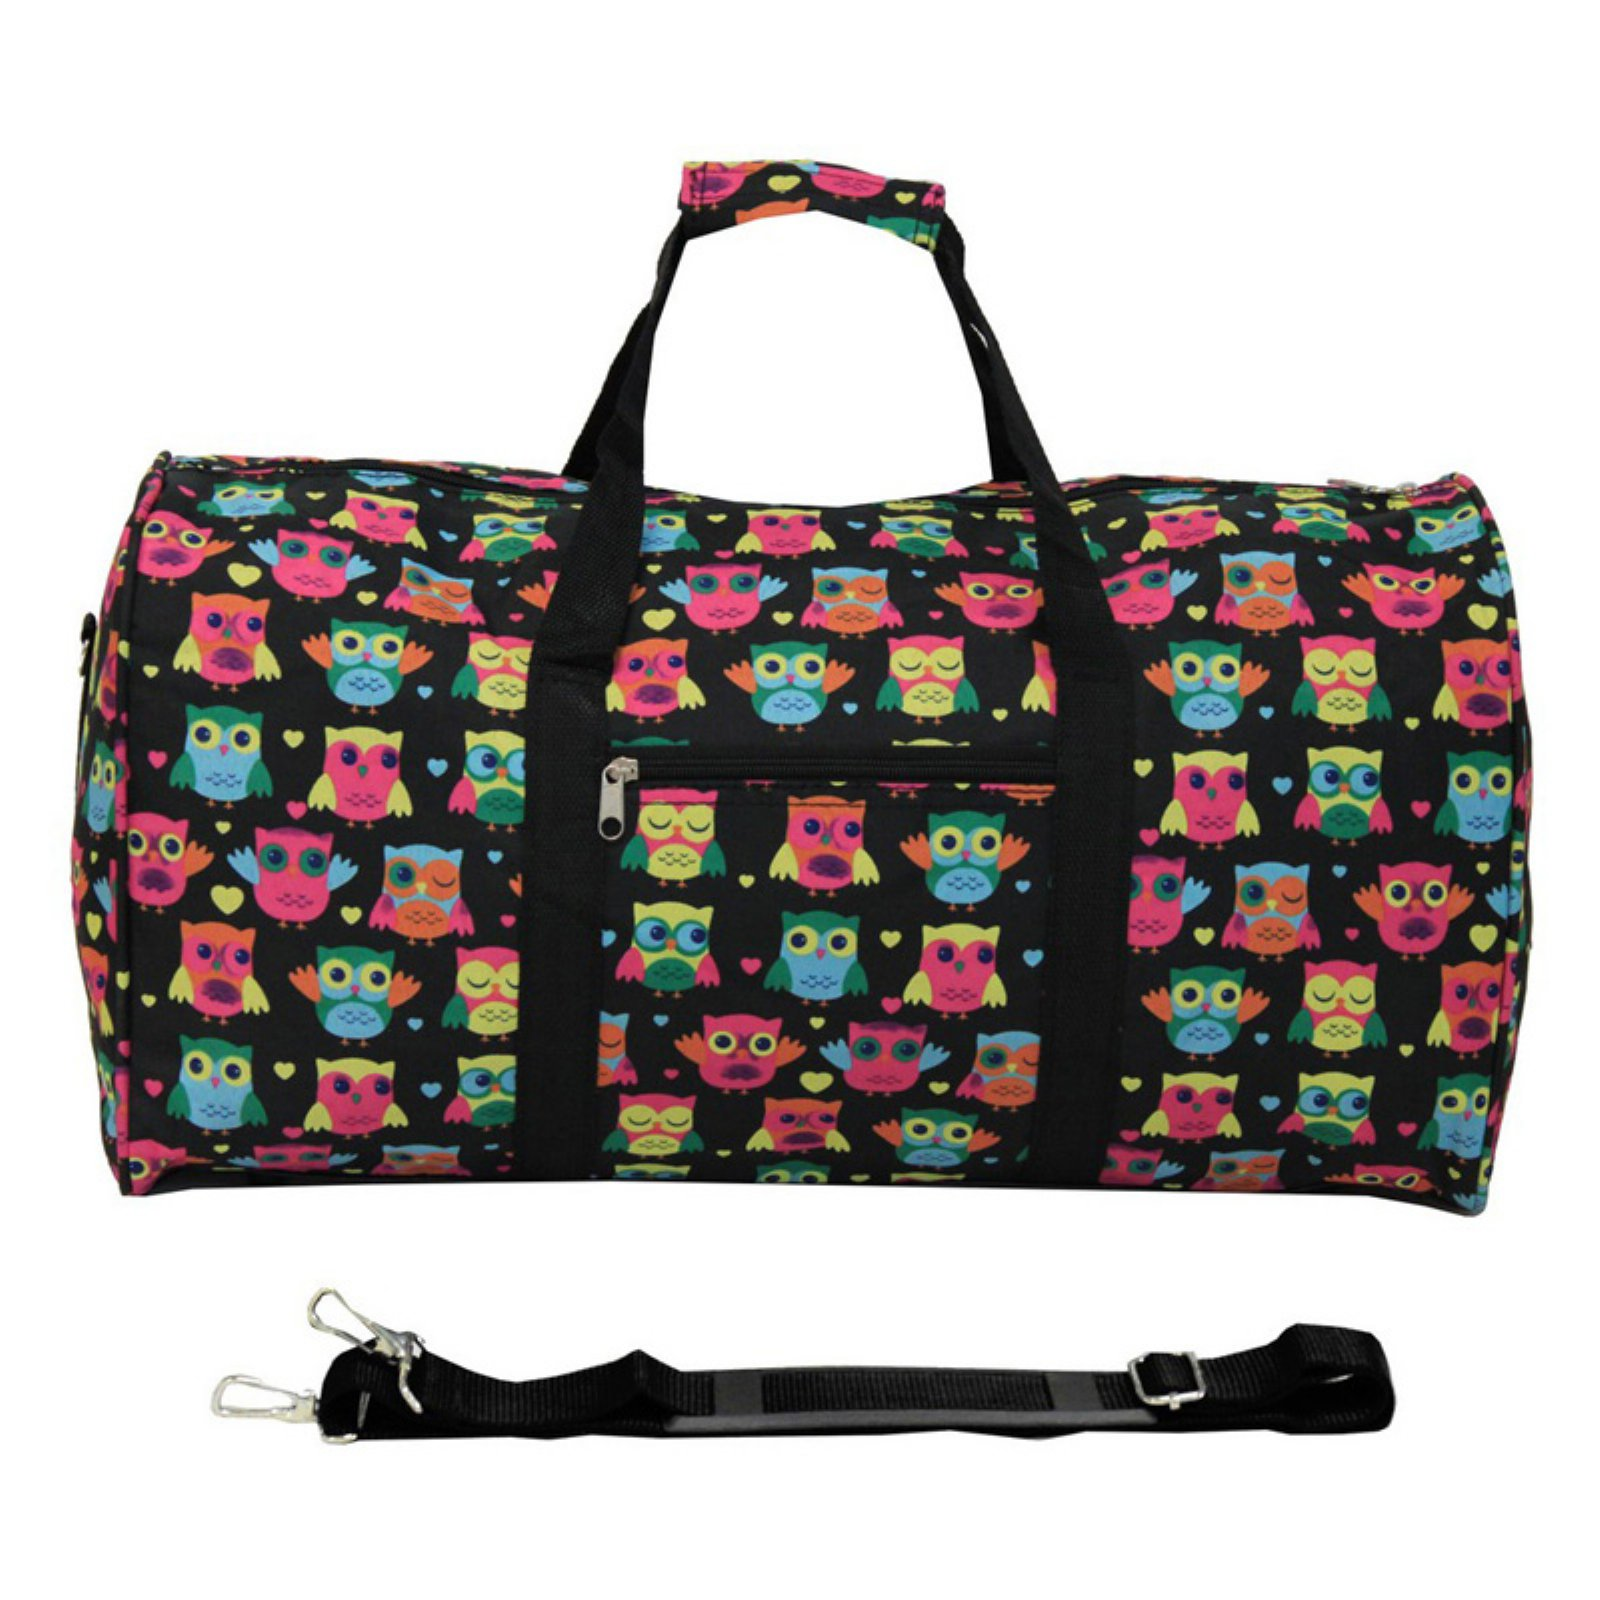 World Traveler Owl 22 in. Duffel Bag by World Traveler